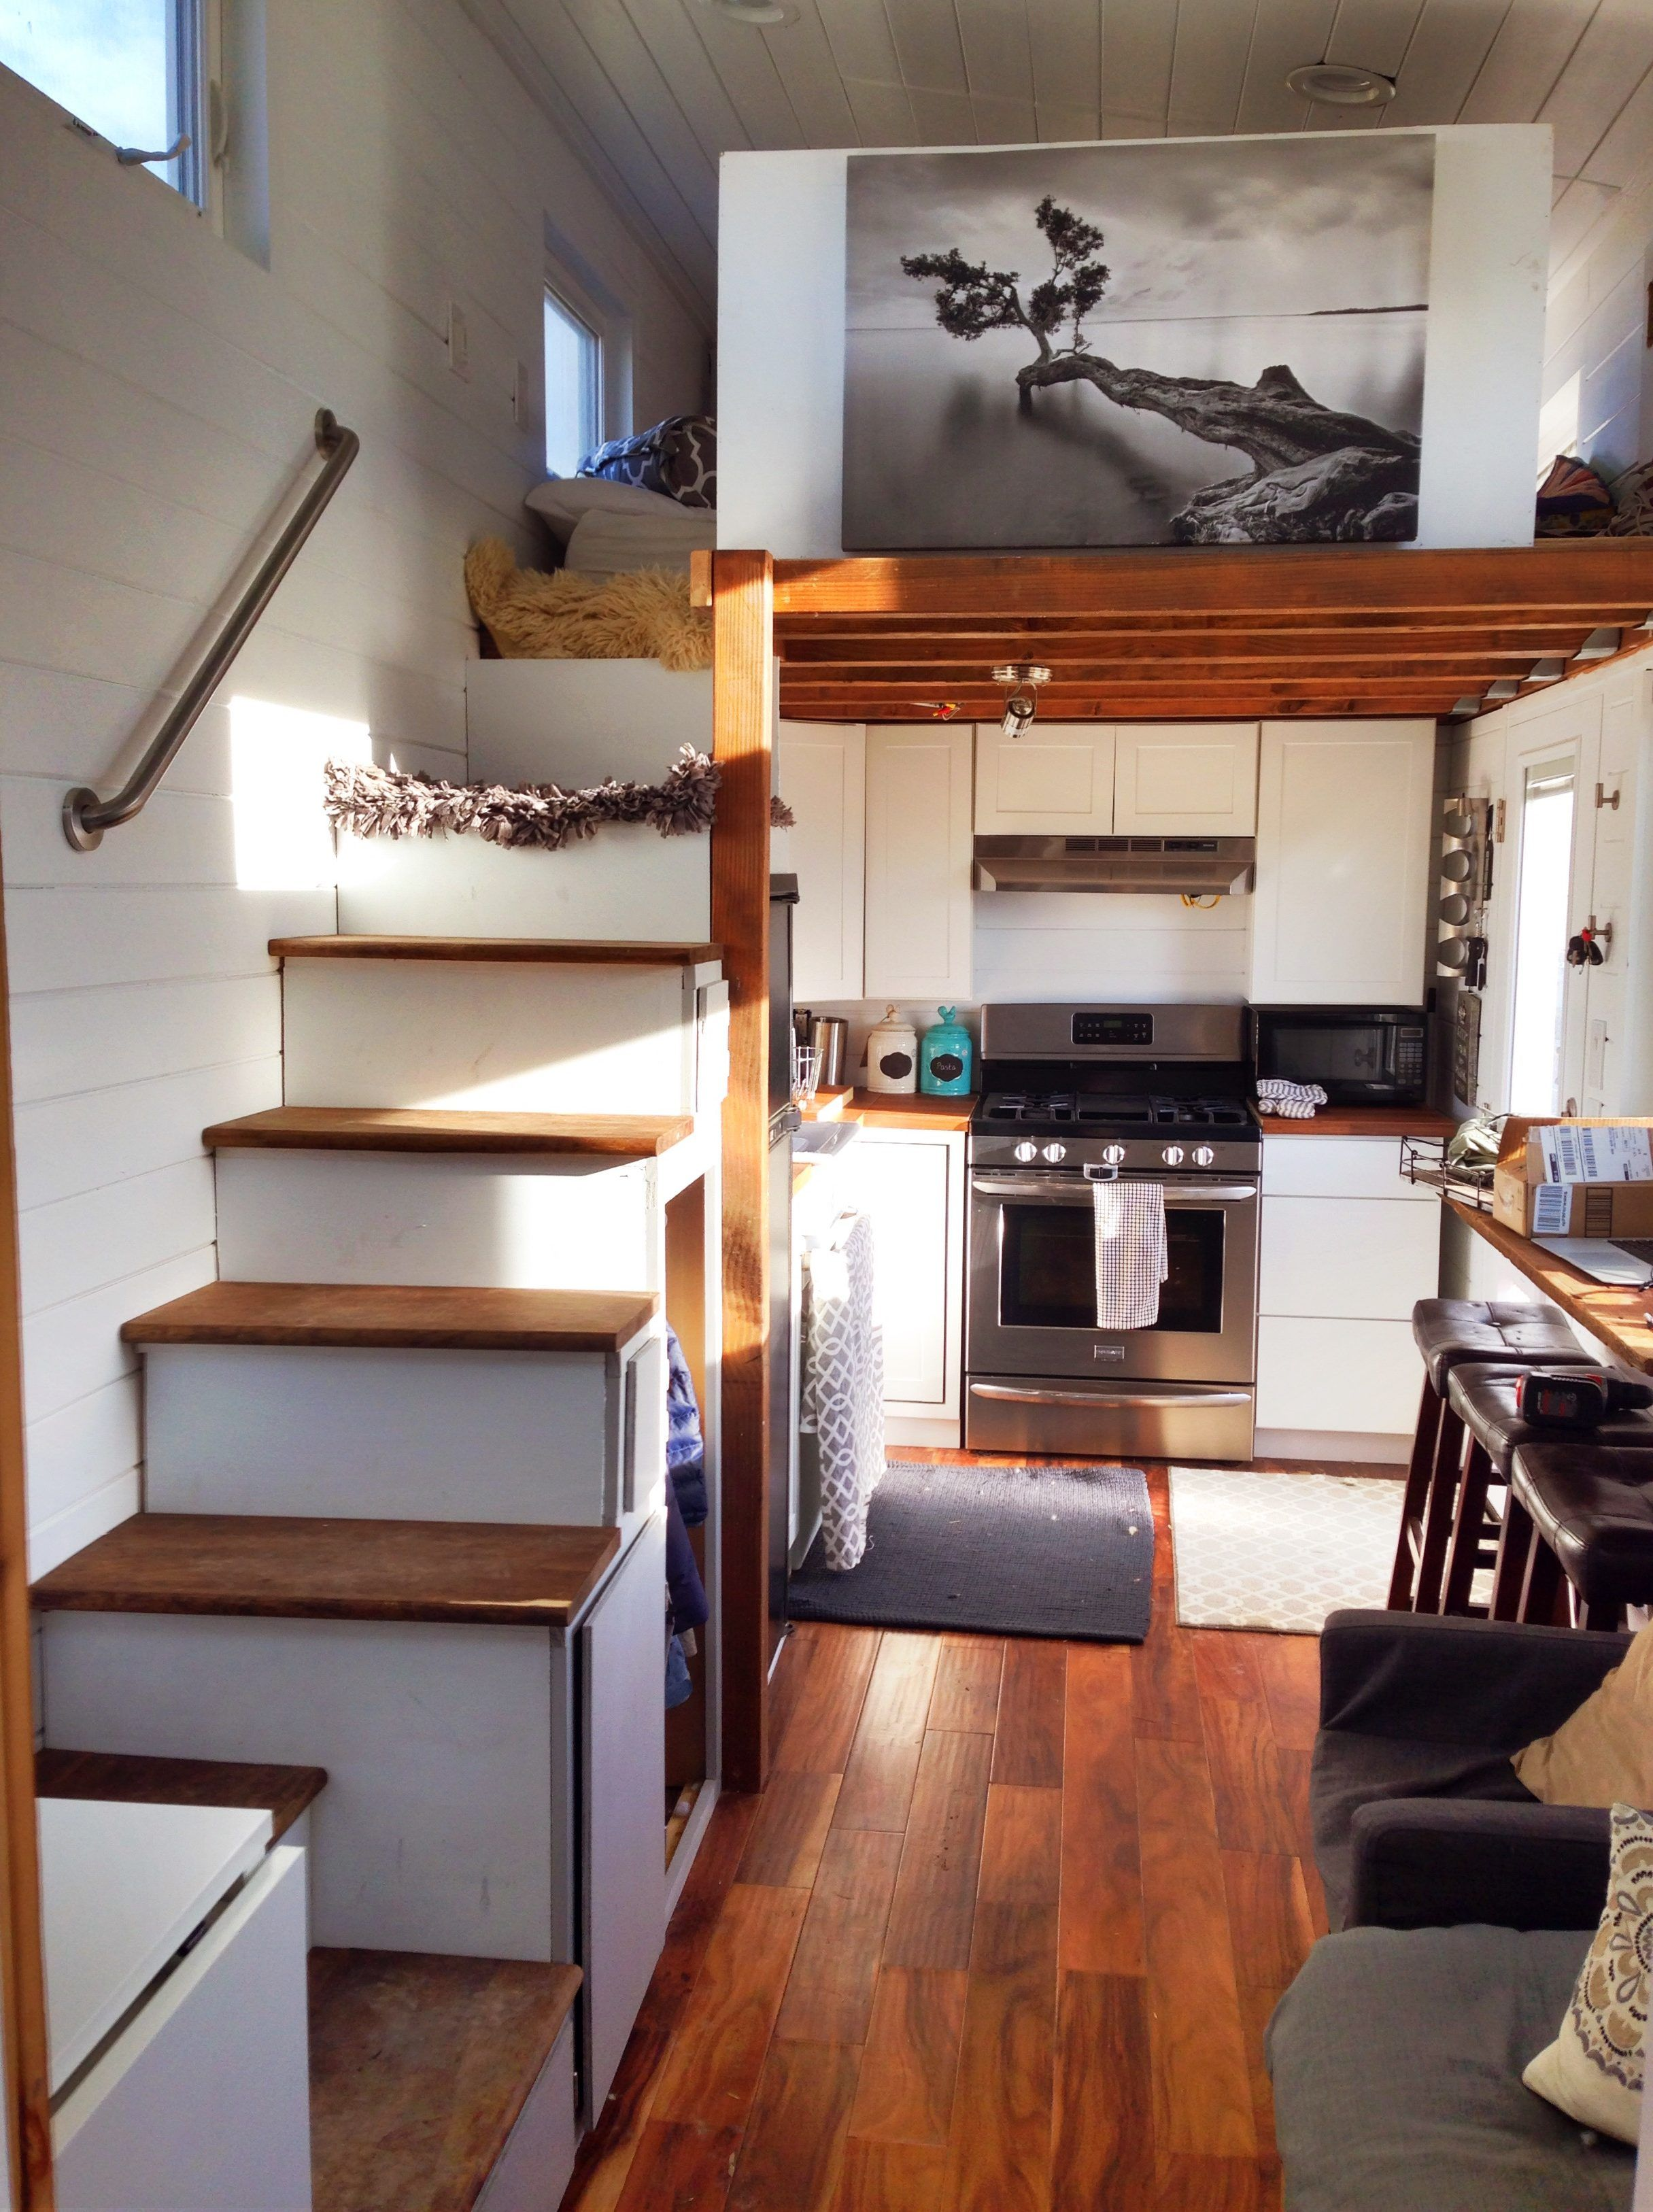 24 tiny house two lofts rooftop deck 4 tiled shower skylight rh pinterest com 24' tiny house weight 24' tiny house weight